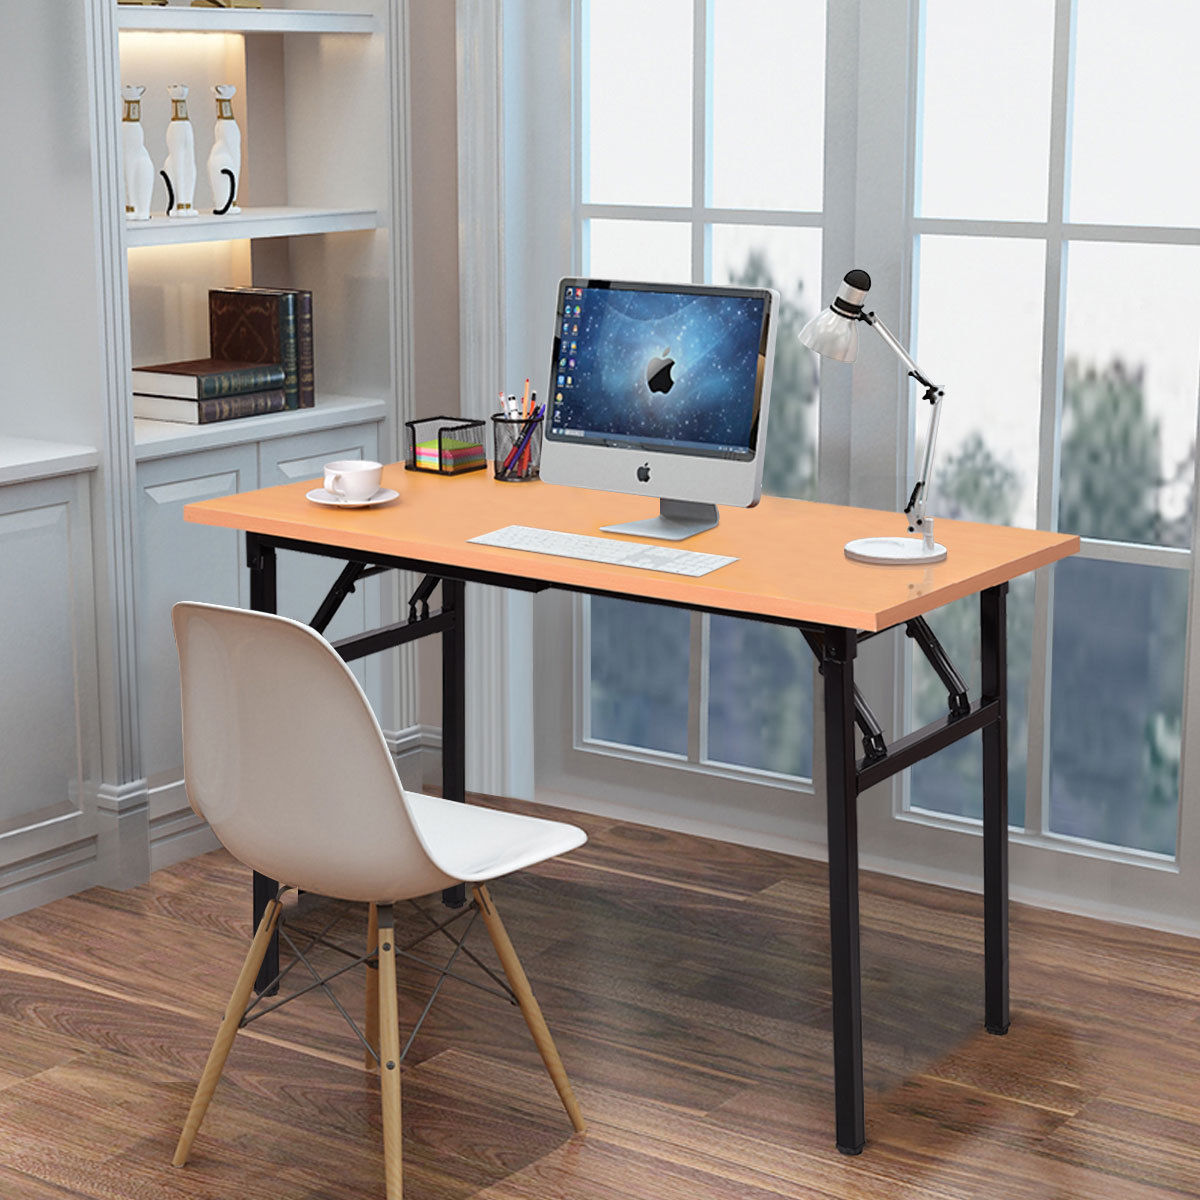 Computer Desk Pc Laptop Wood Table Home Office Study: Giantex Portable Folding Computer Desk PC Laptop Table